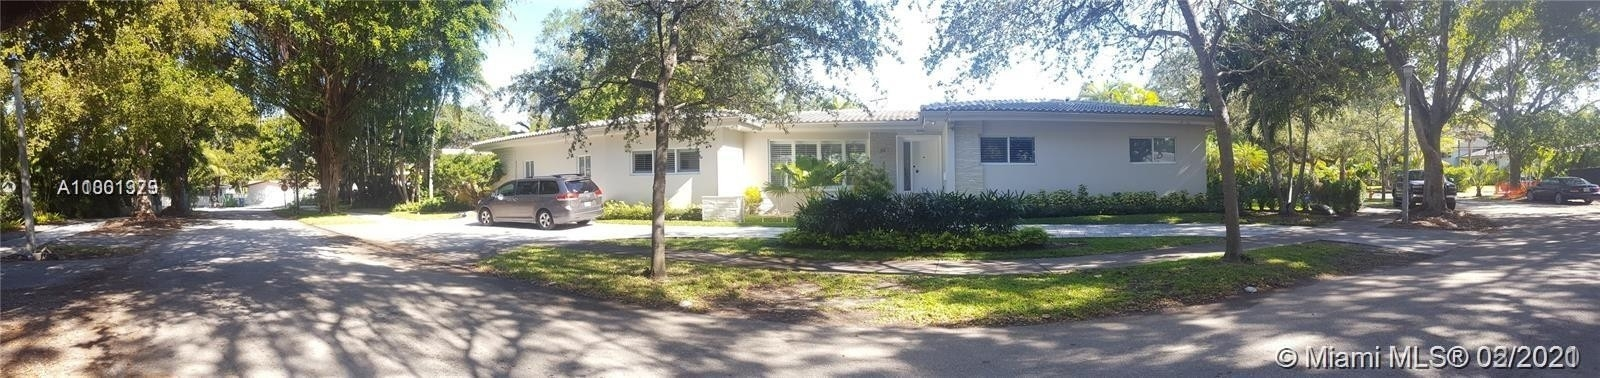 19. Single Family Homes for Sale at Northeast Coconut Grove, Miami, FL 33133